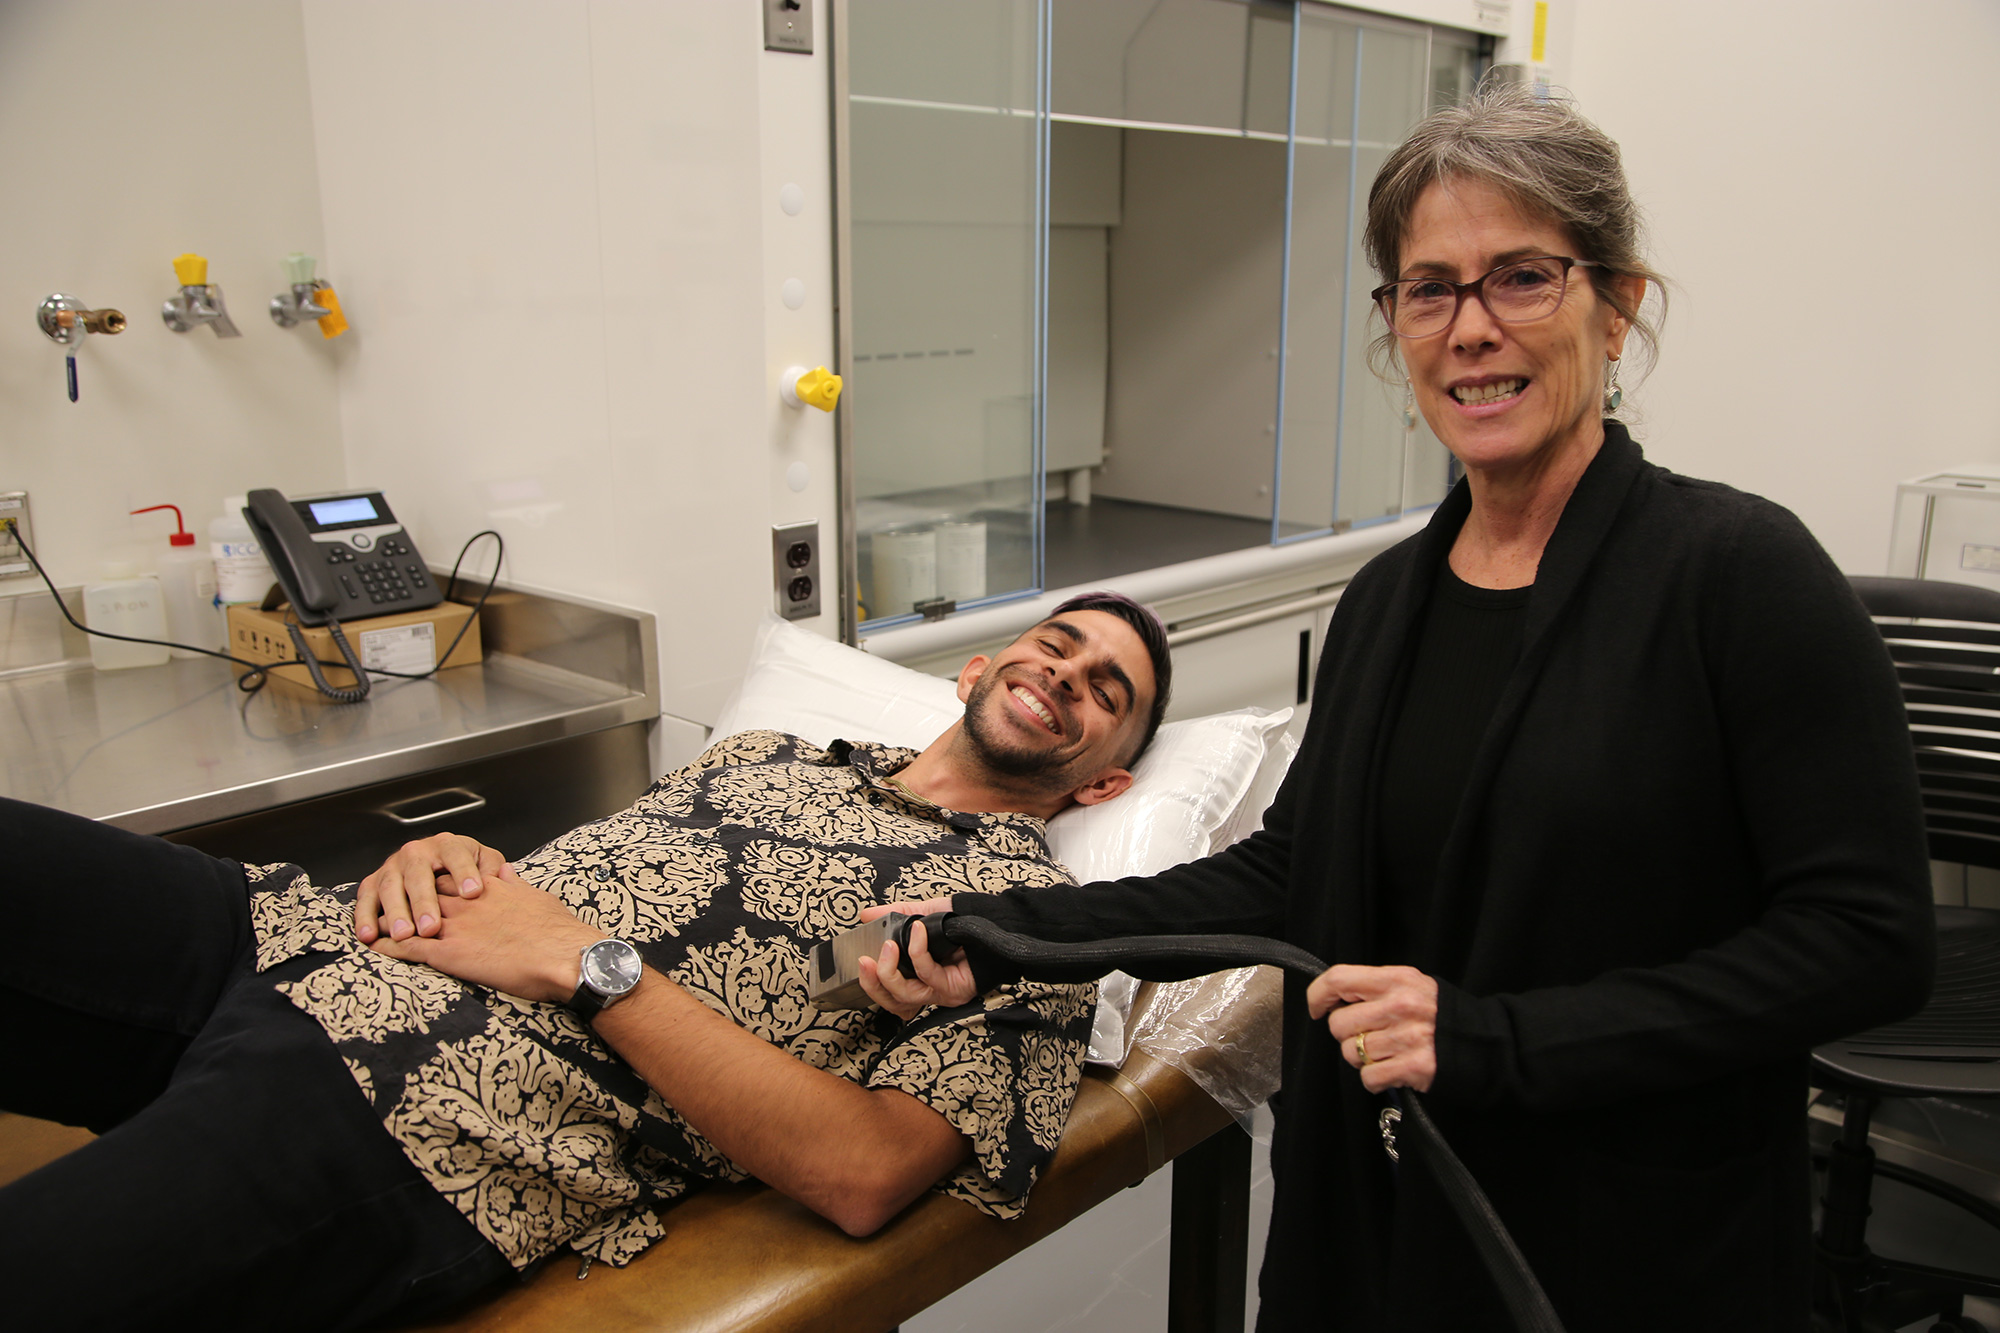 Alexander Alvarez and Sonia Vohnout demonstrate the acoustoelectric cardiac imaging invention.